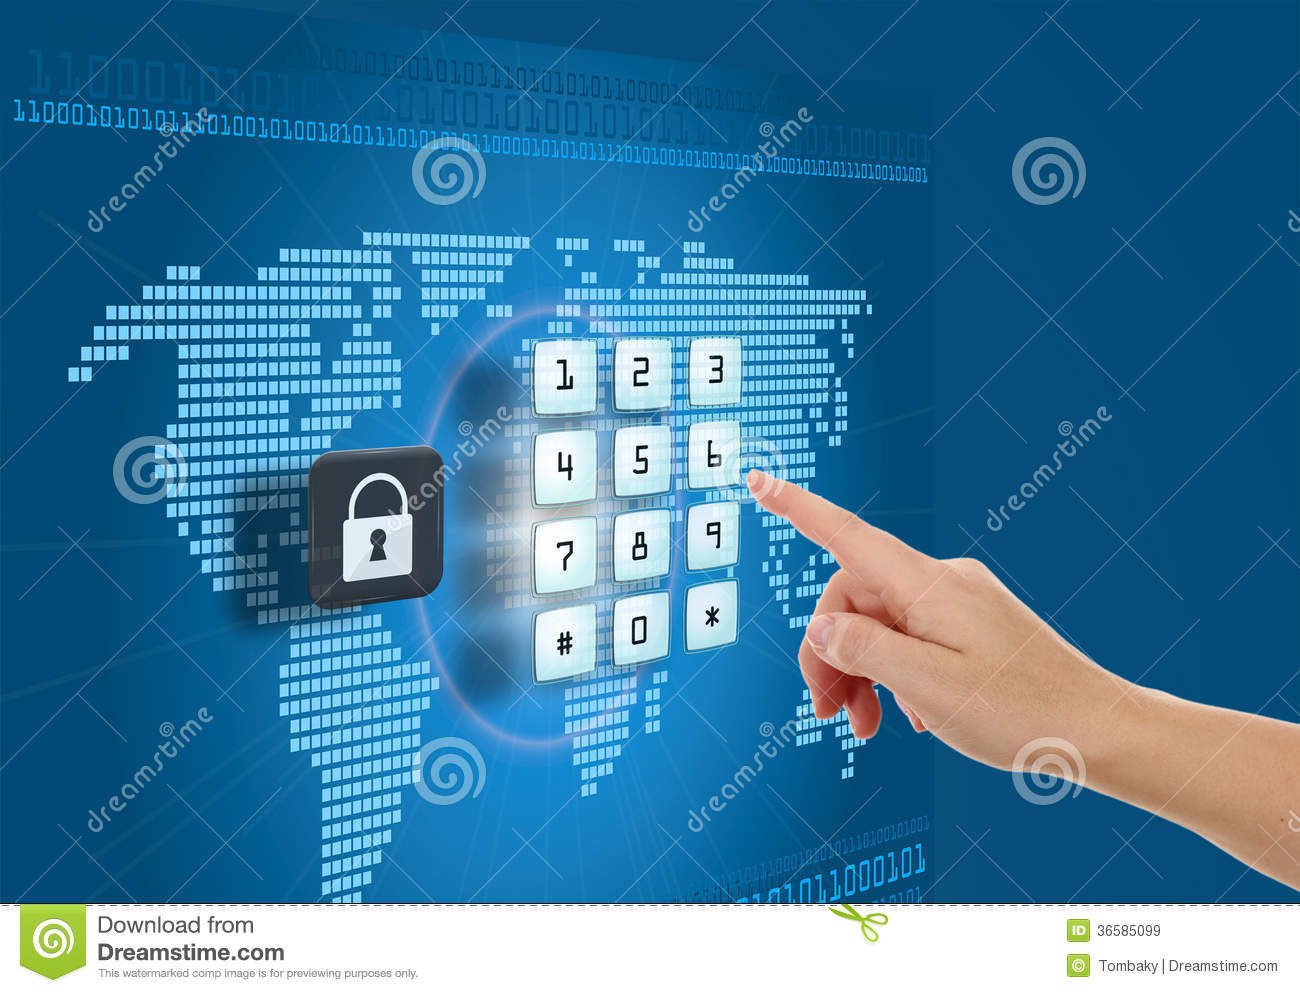 Security and protection in Internet